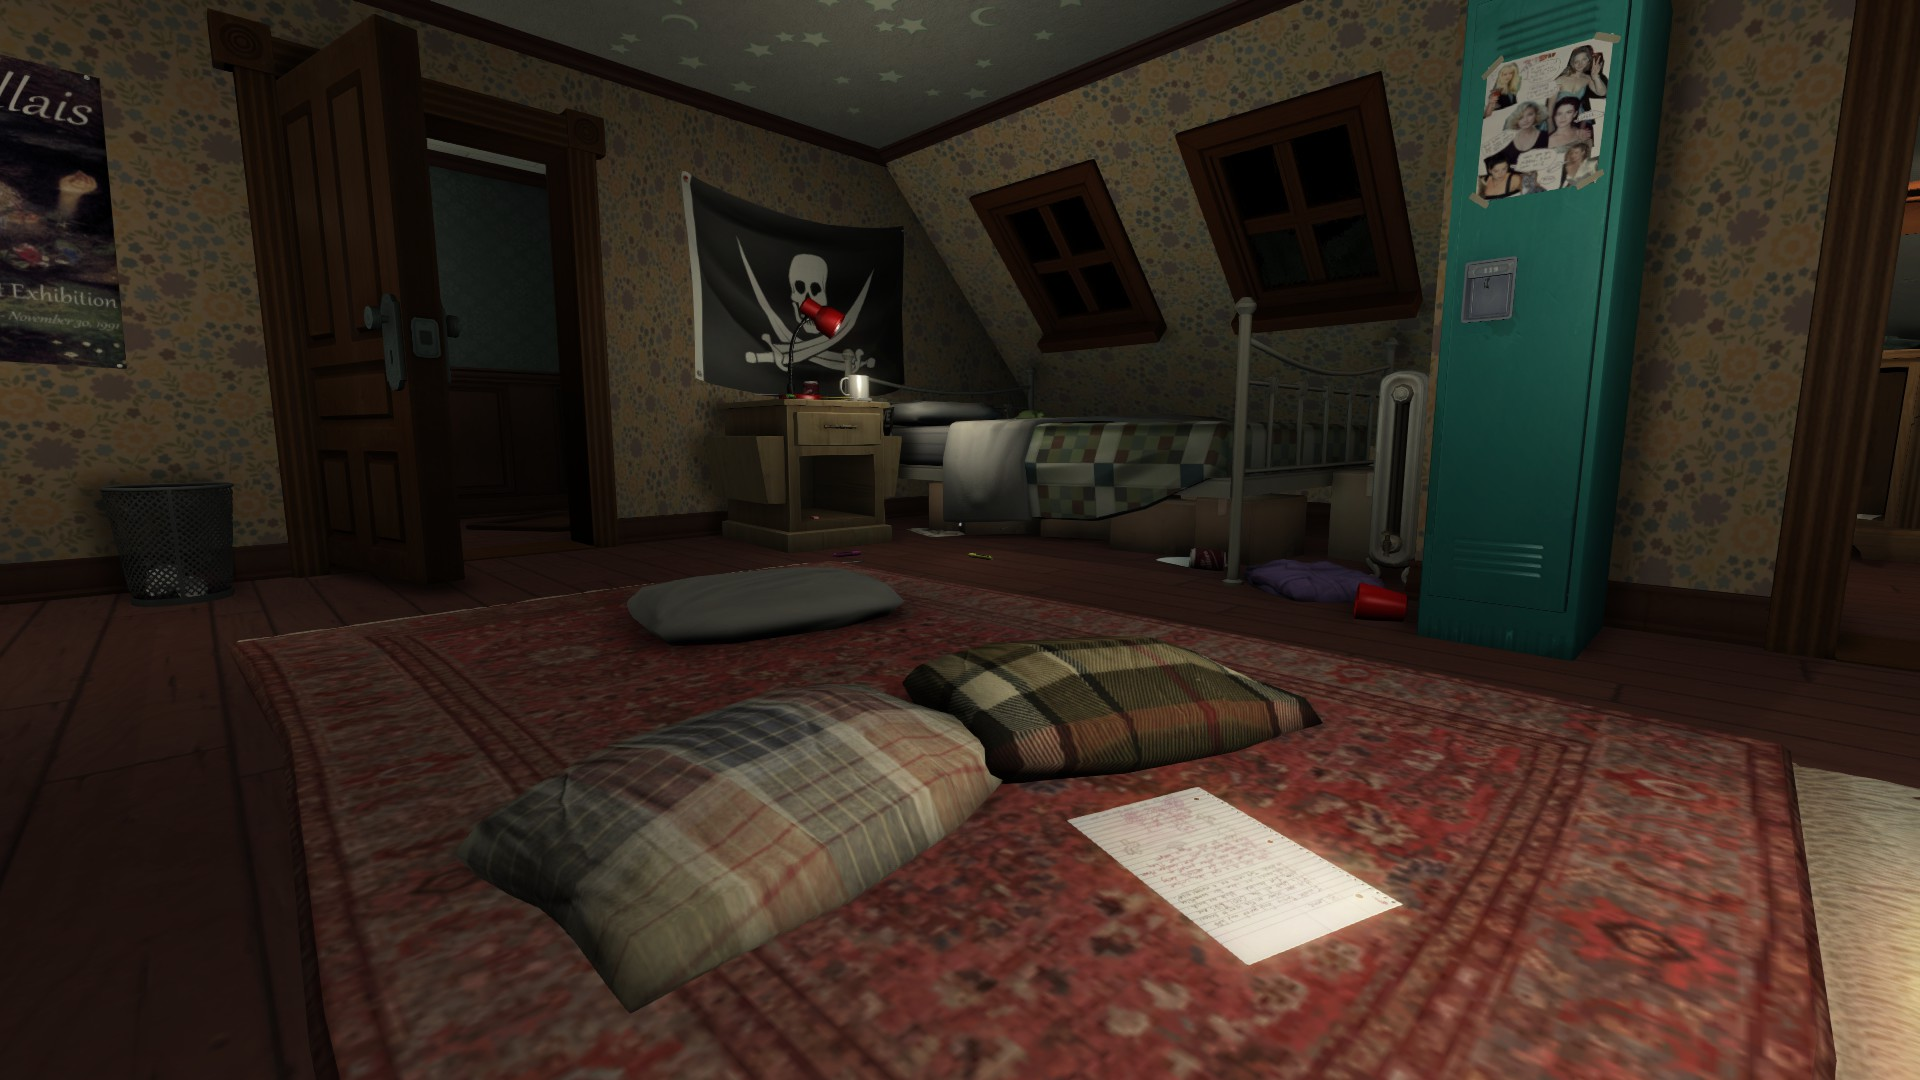 Gone Home in VR could mean the realistic pirate flag action we've all been waiting for.